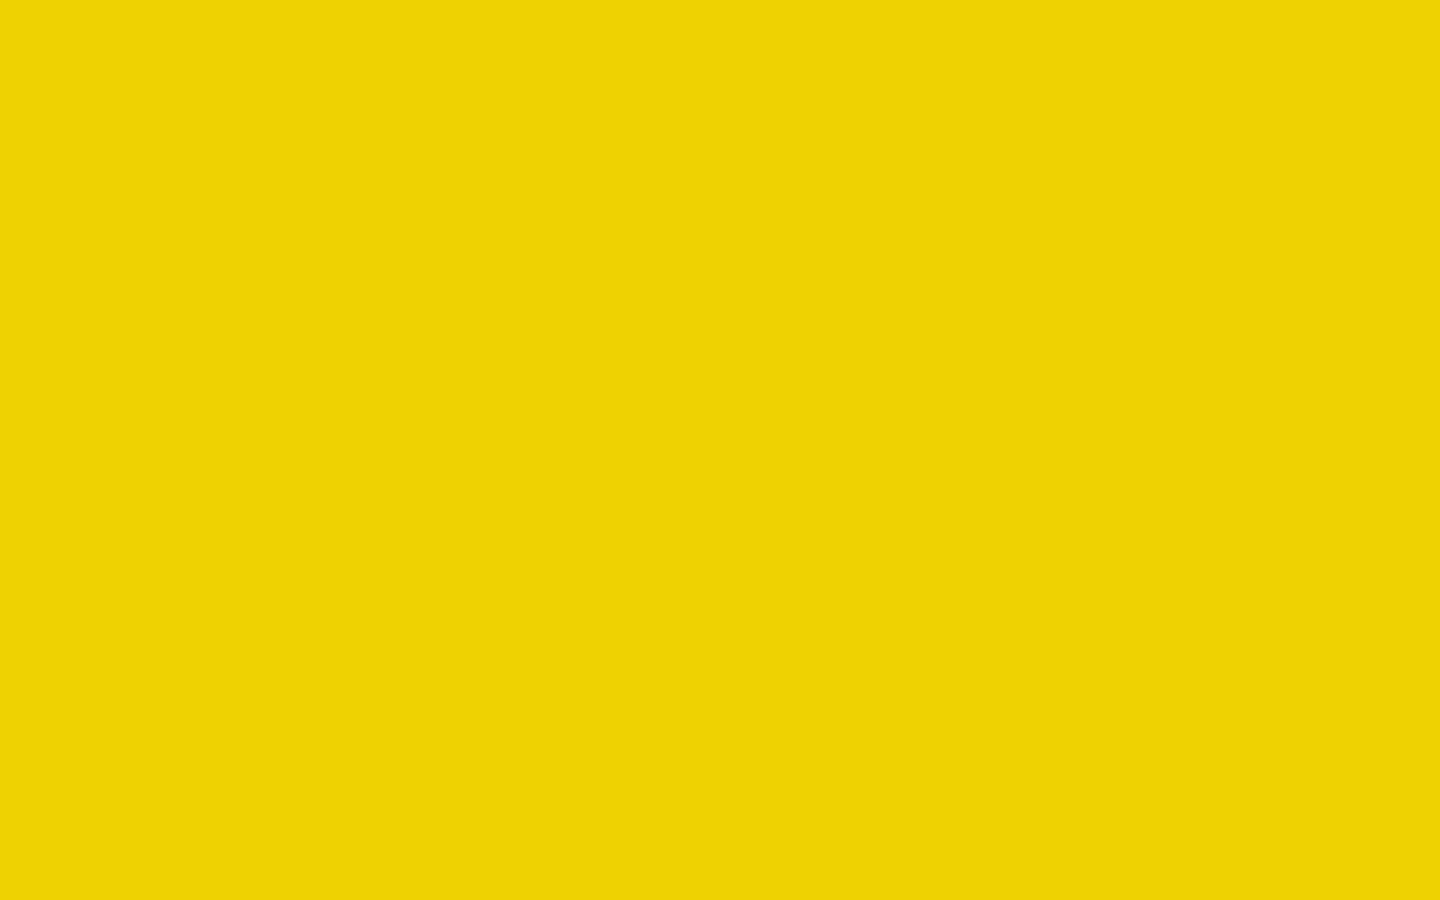 1440x900 Safety Yellow Solid Color Background